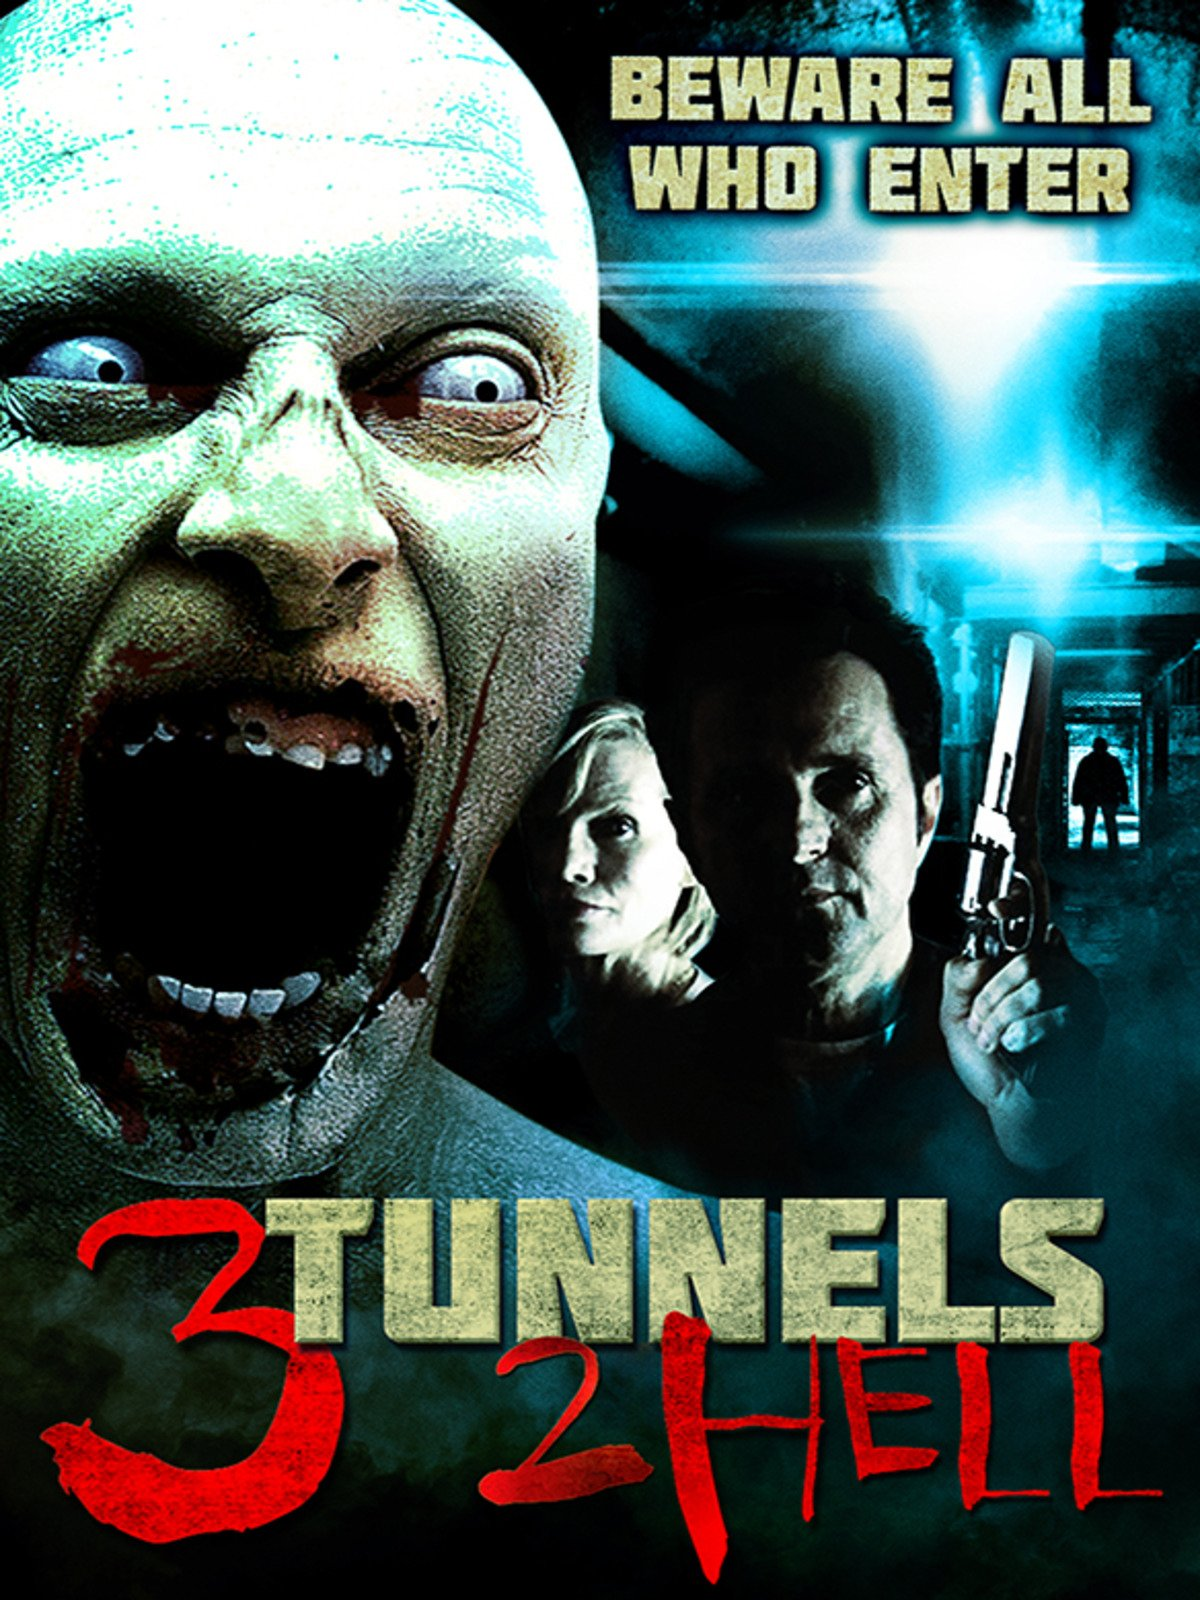 3 Tunnels 2 Hell on Amazon Prime Video UK